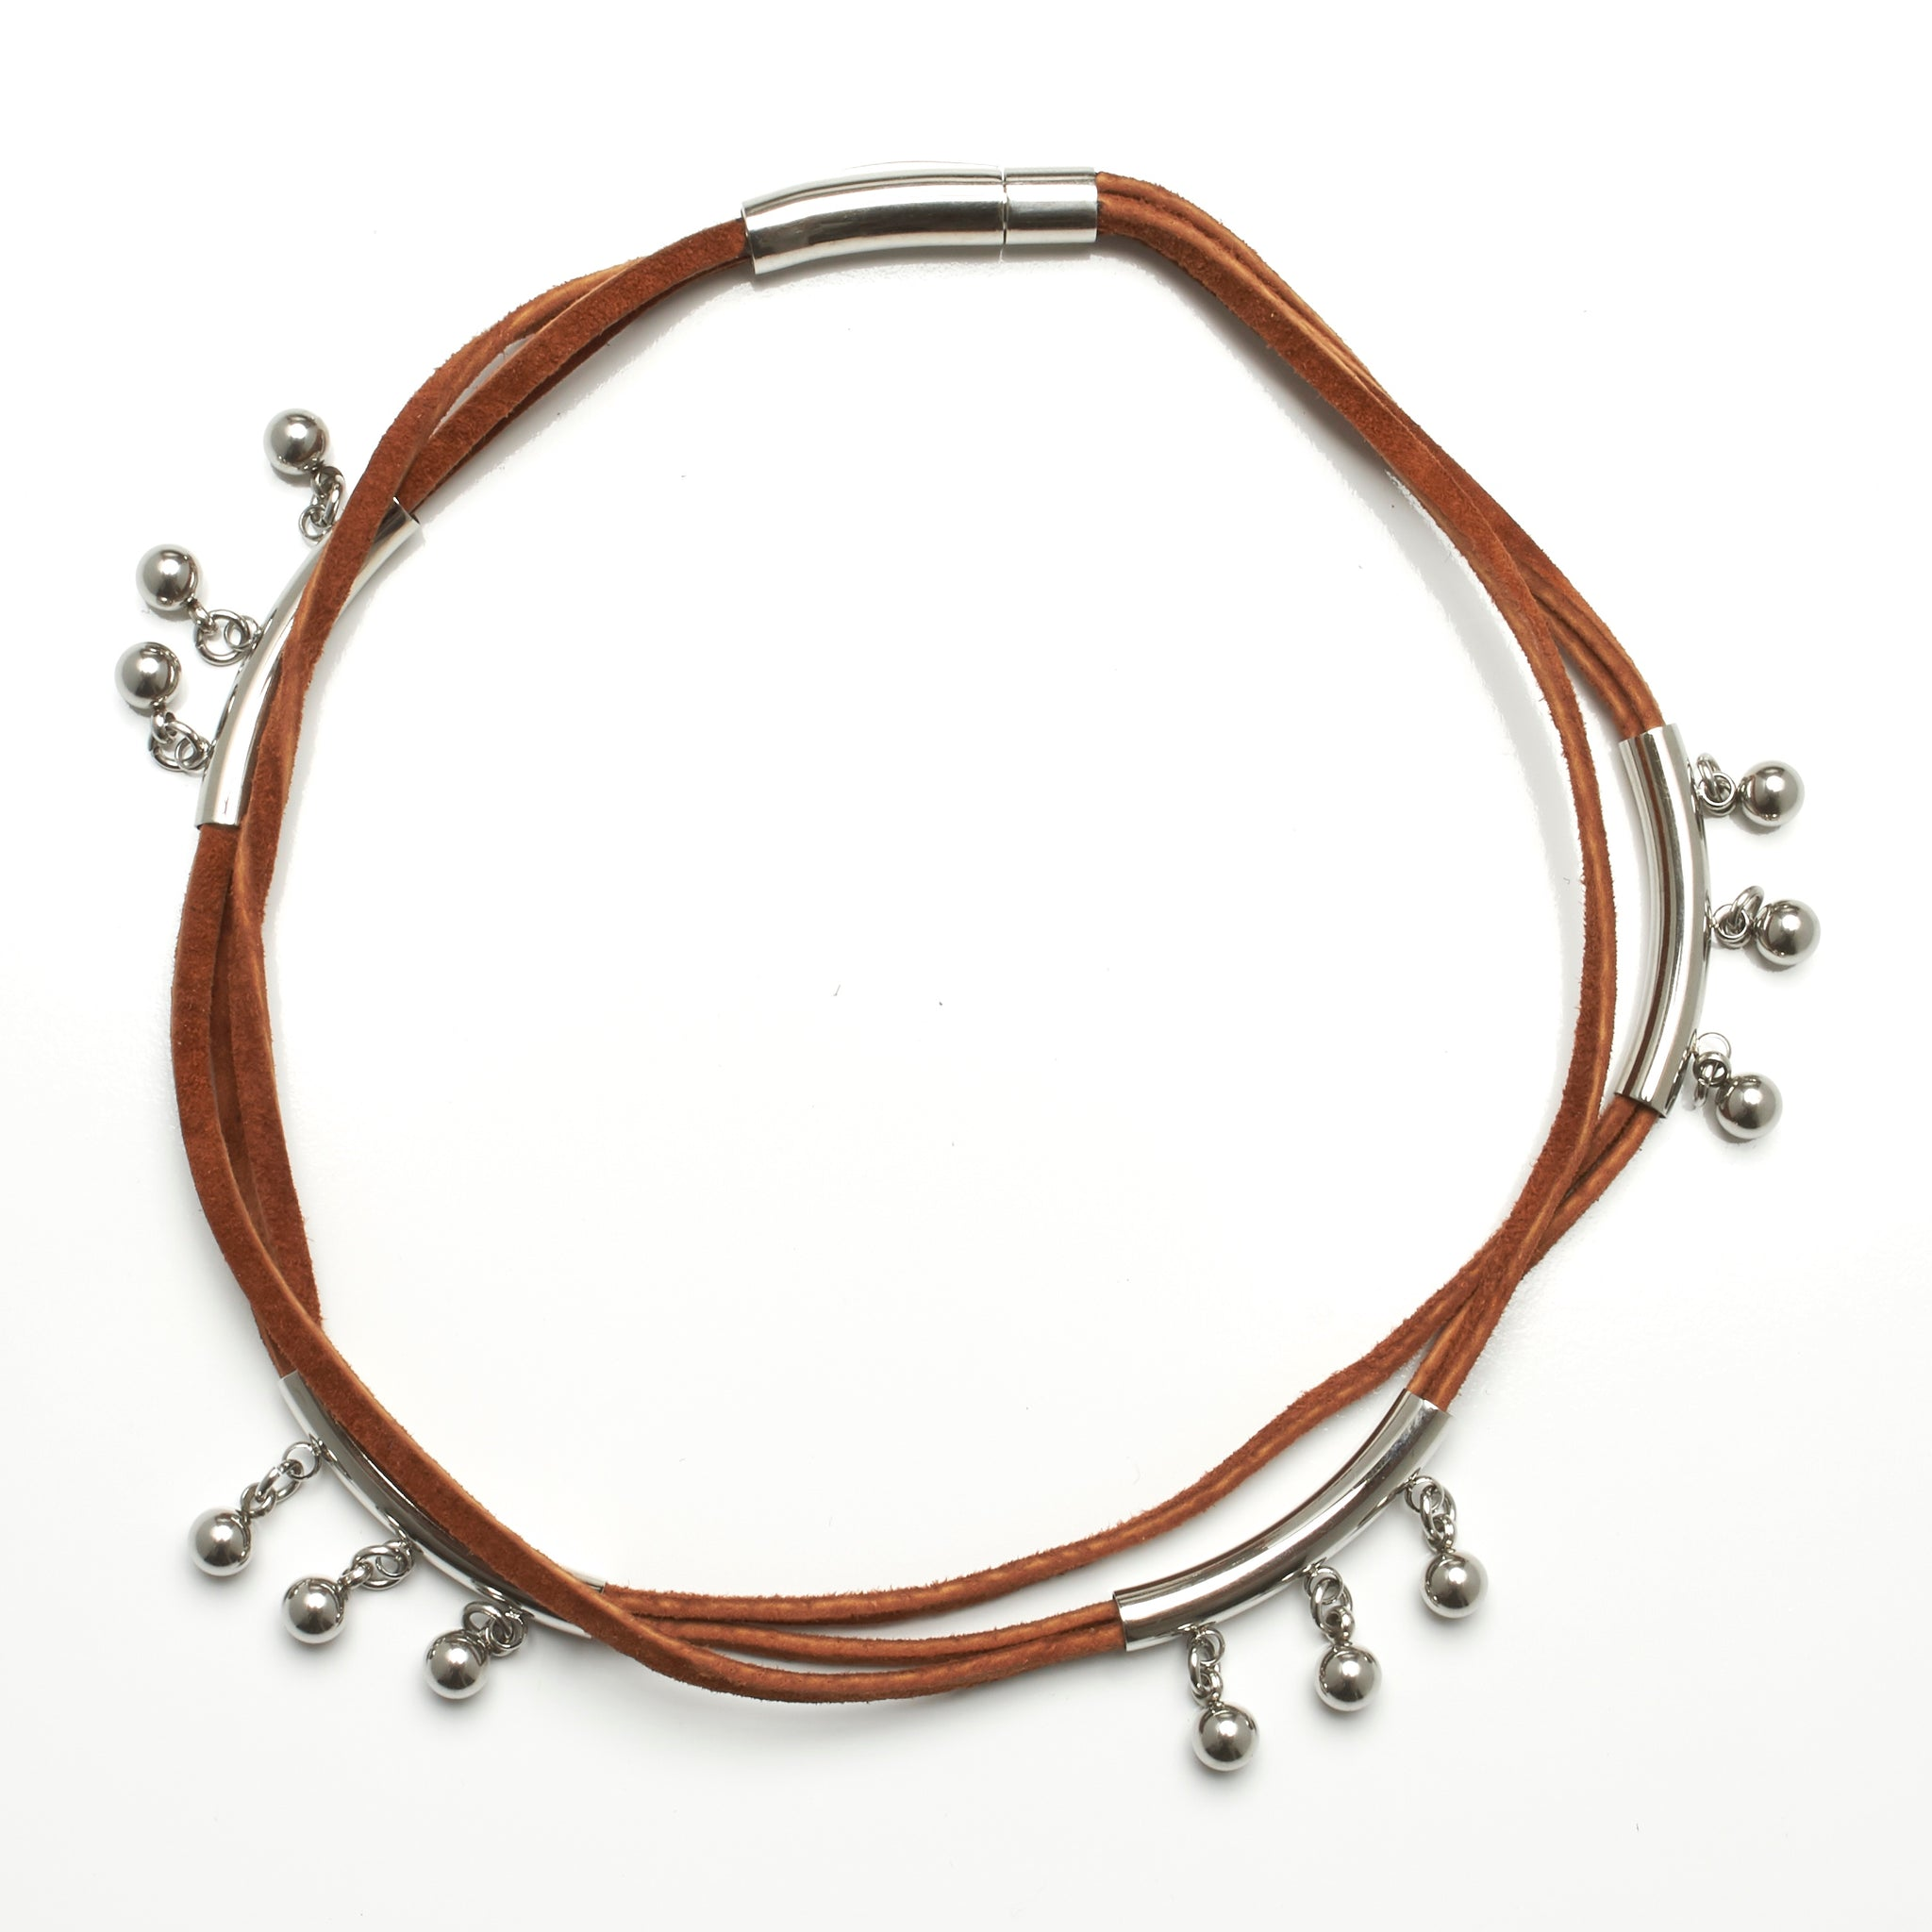 2 in 1 necklace and wraparound bracelet made of suede and stainless steel